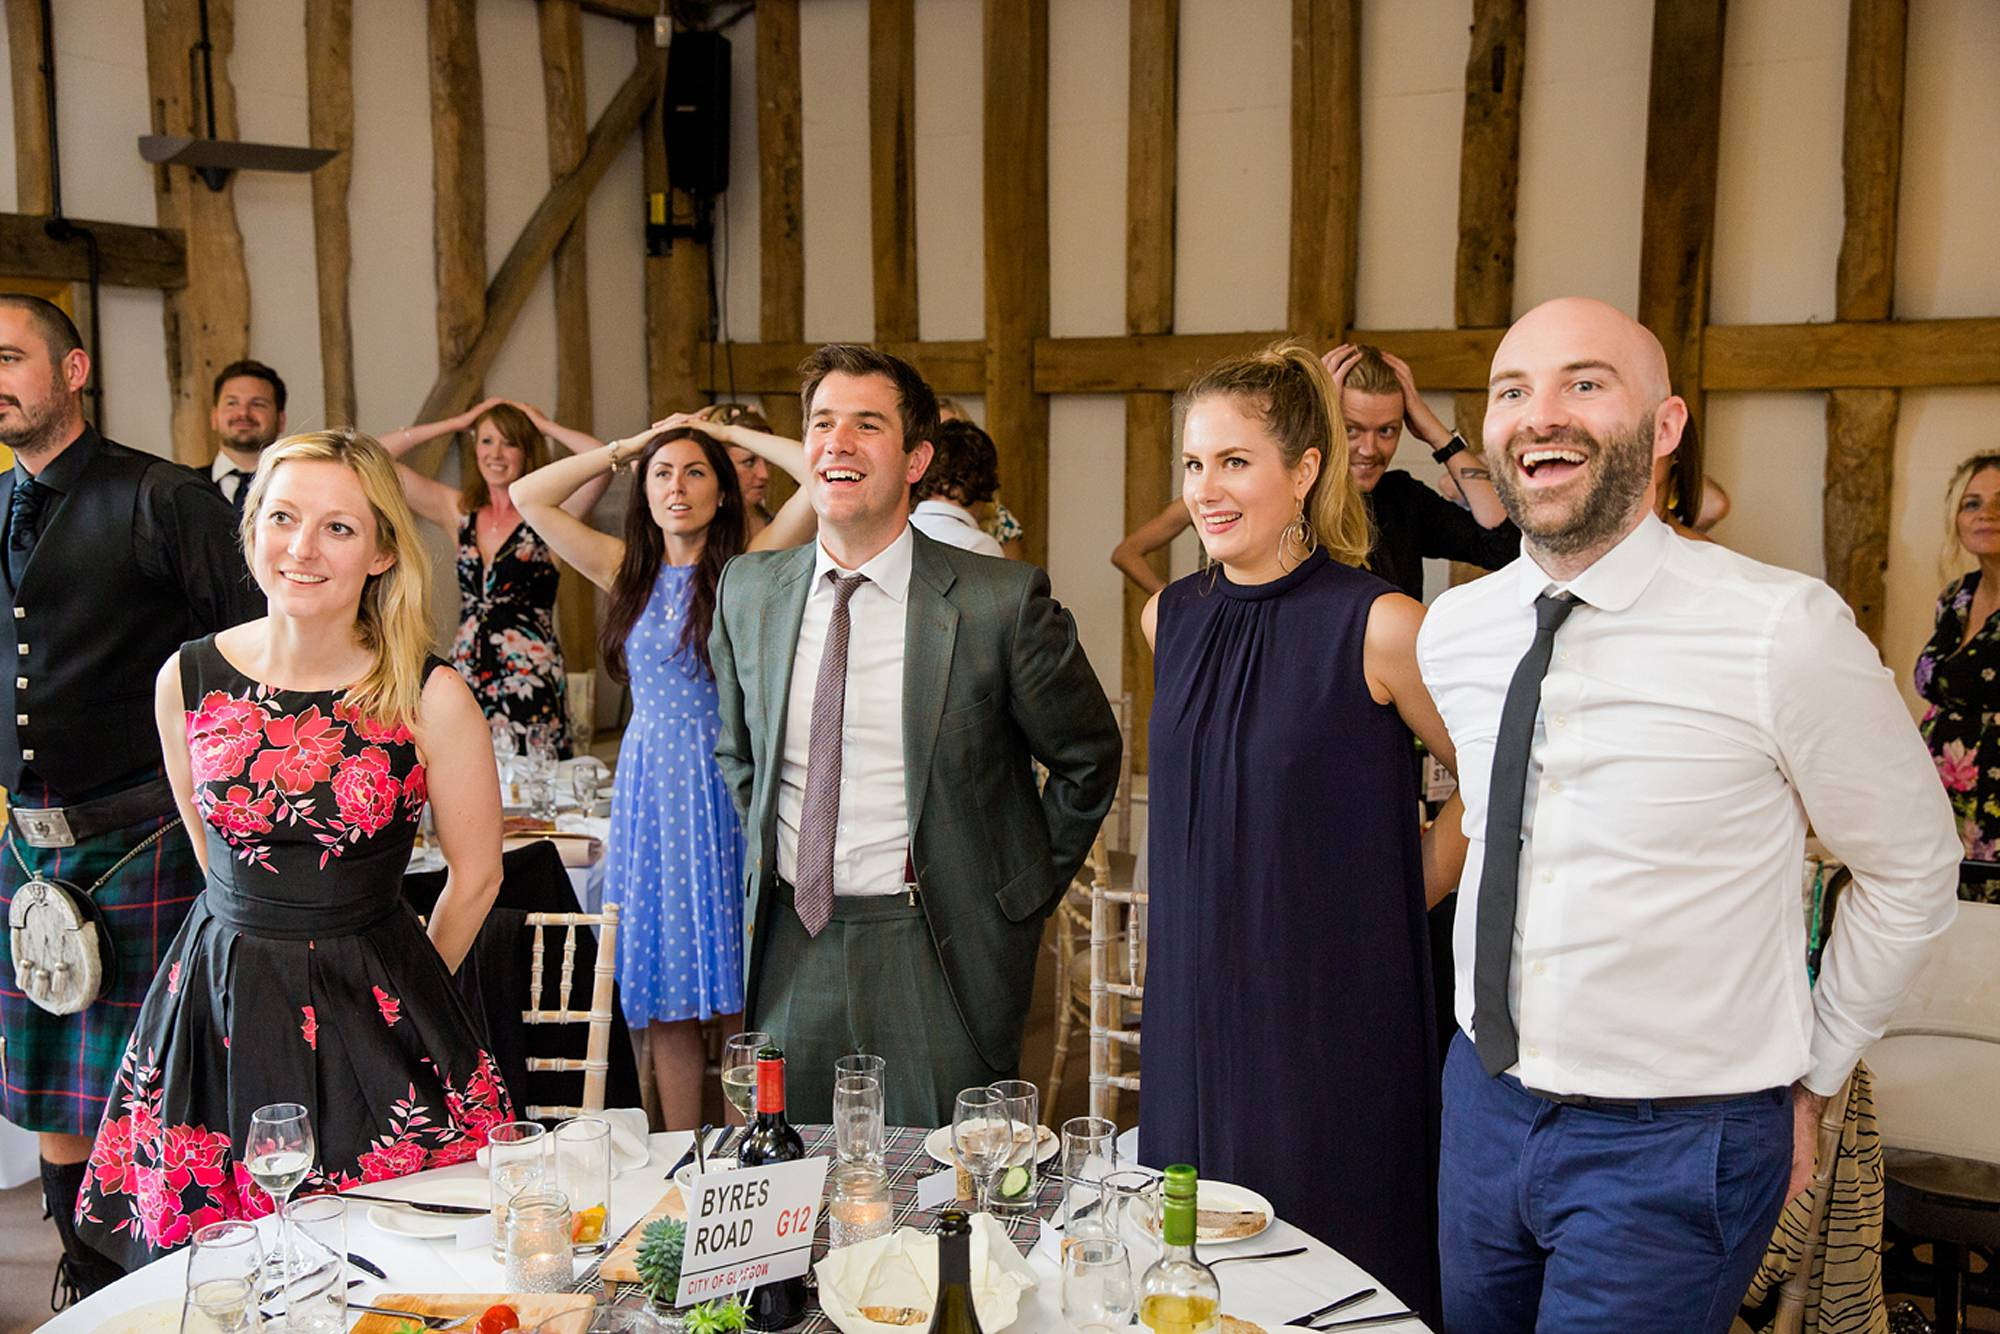 outdoor humanist wedding photography wedding guests laughing